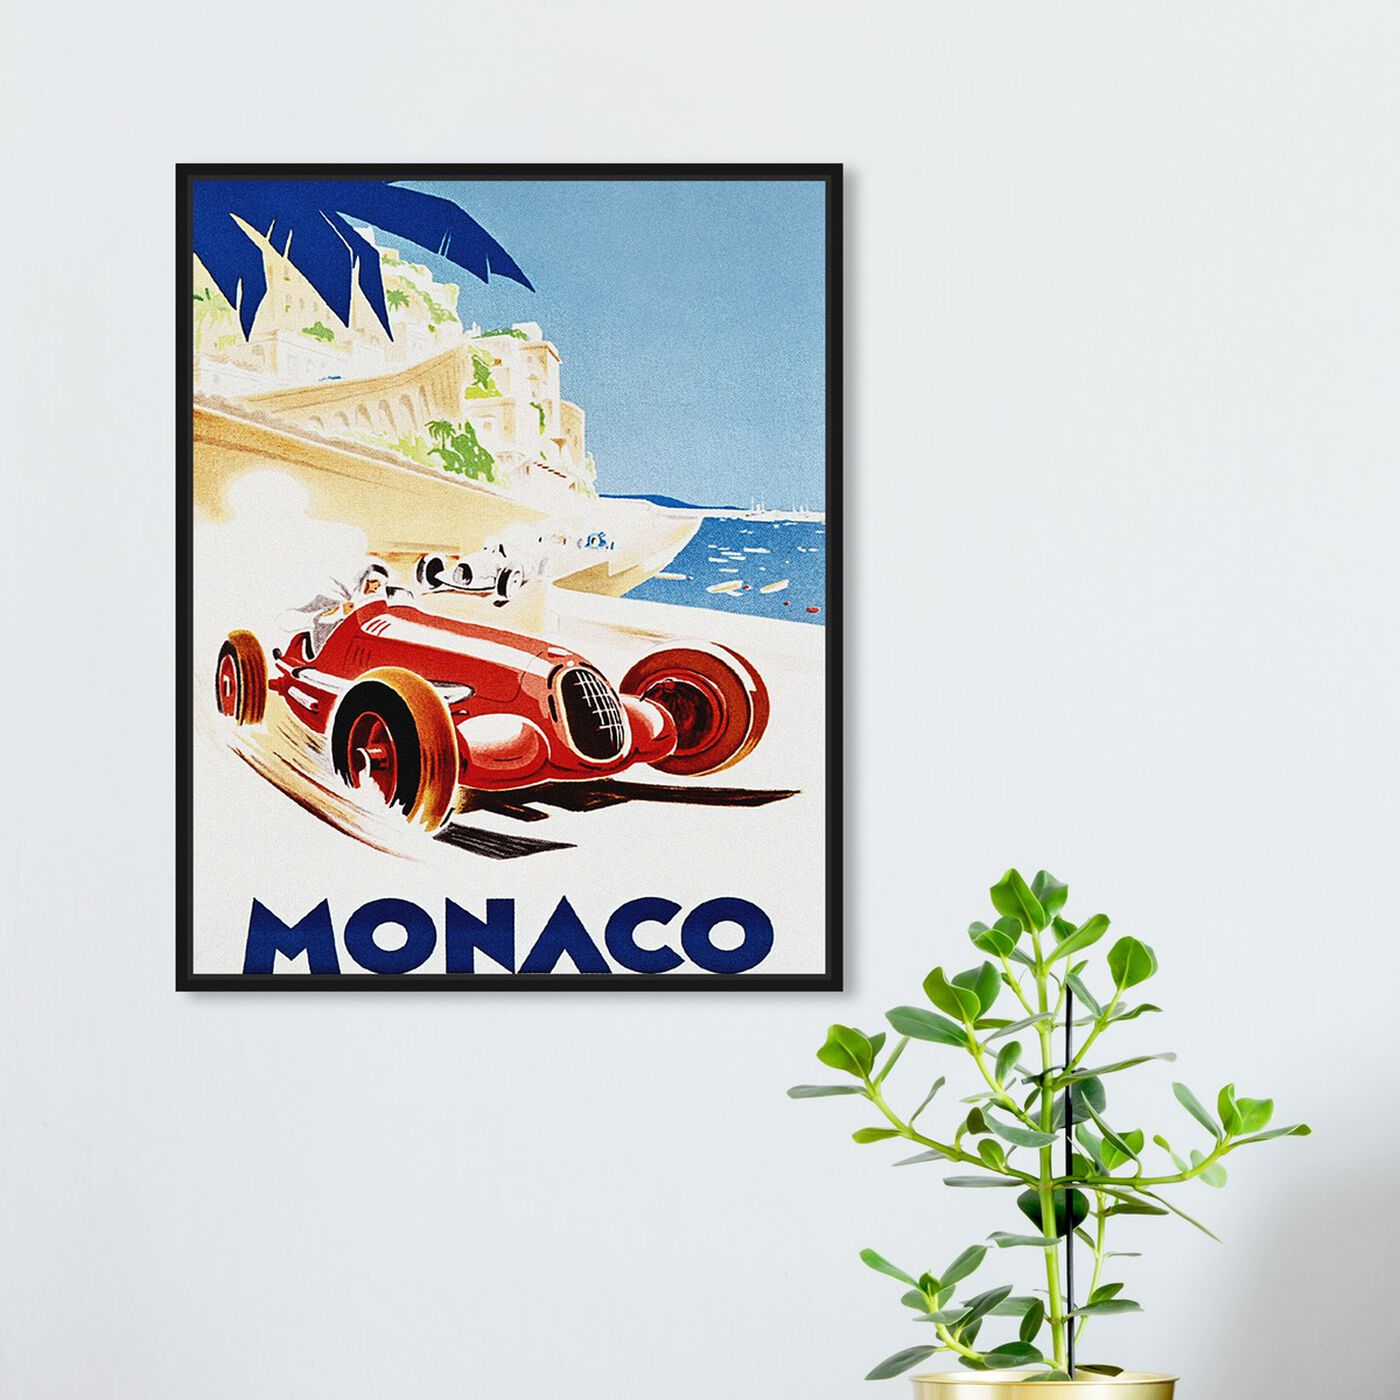 Hanging view of Monaco Grand Prix featuring advertising and posters art.